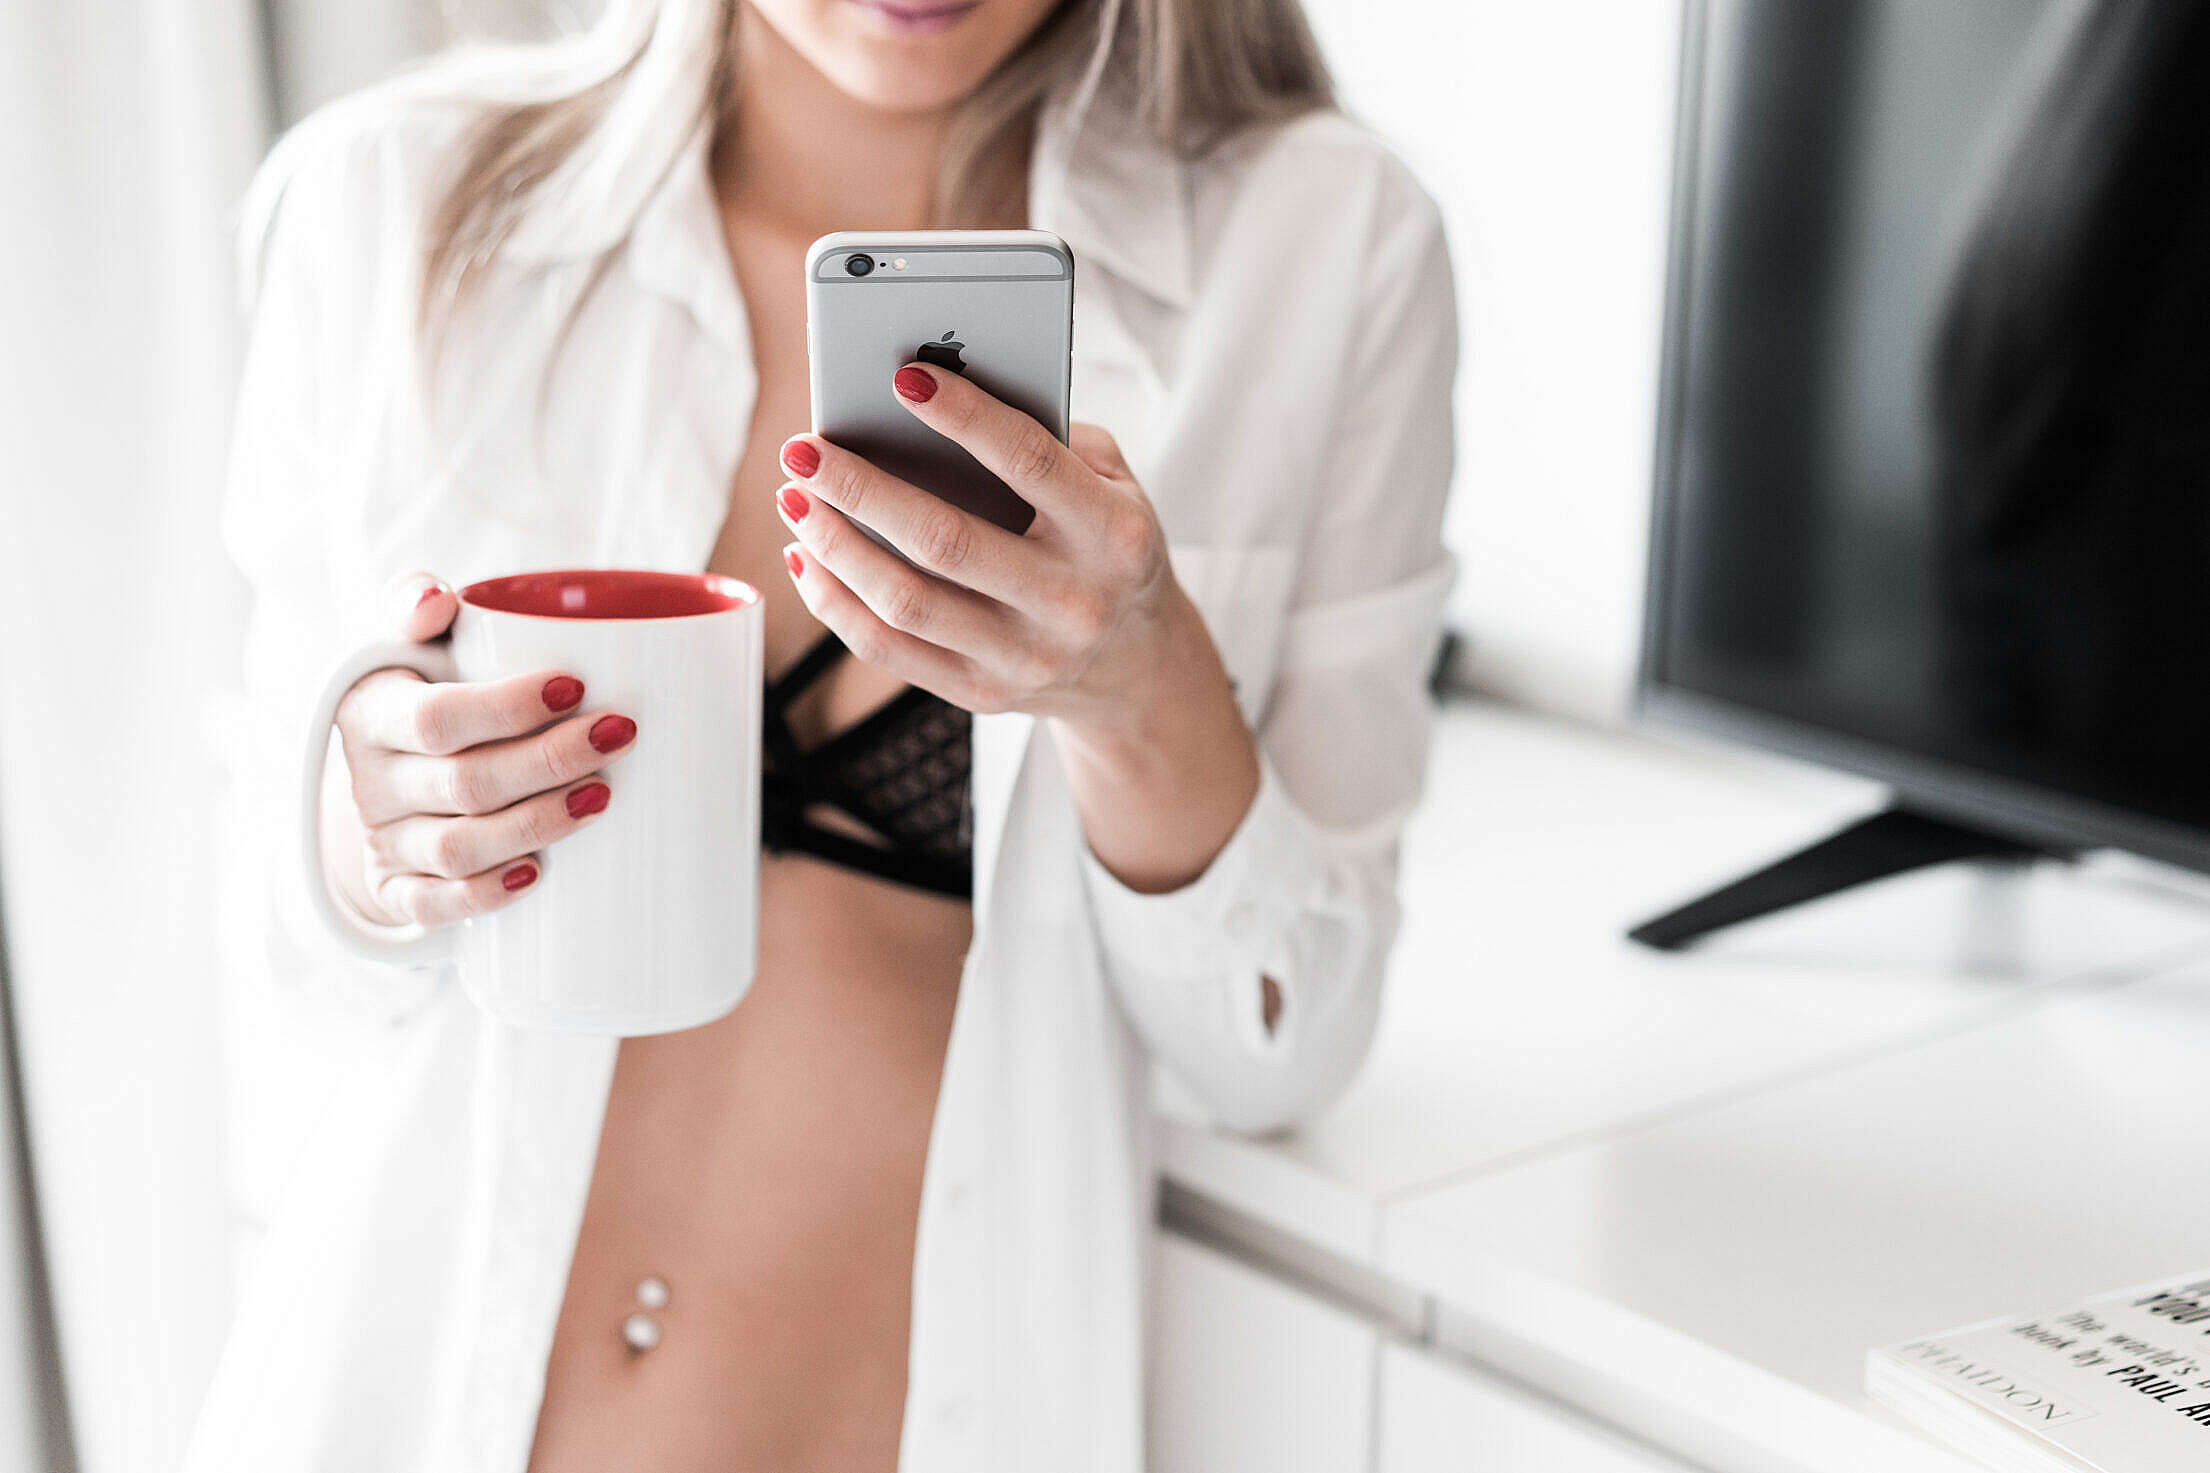 Woman Using Smartphone at Home Free Stock Photo